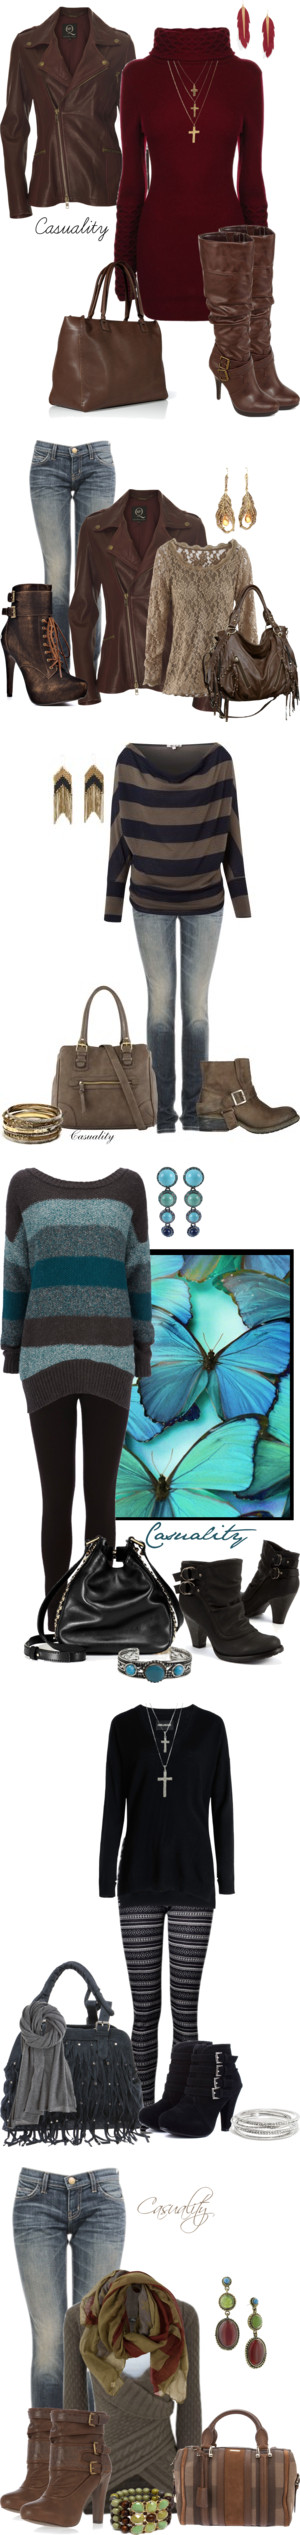 """Rebel Chic"" by casuality ❤ liked on Polyvore"